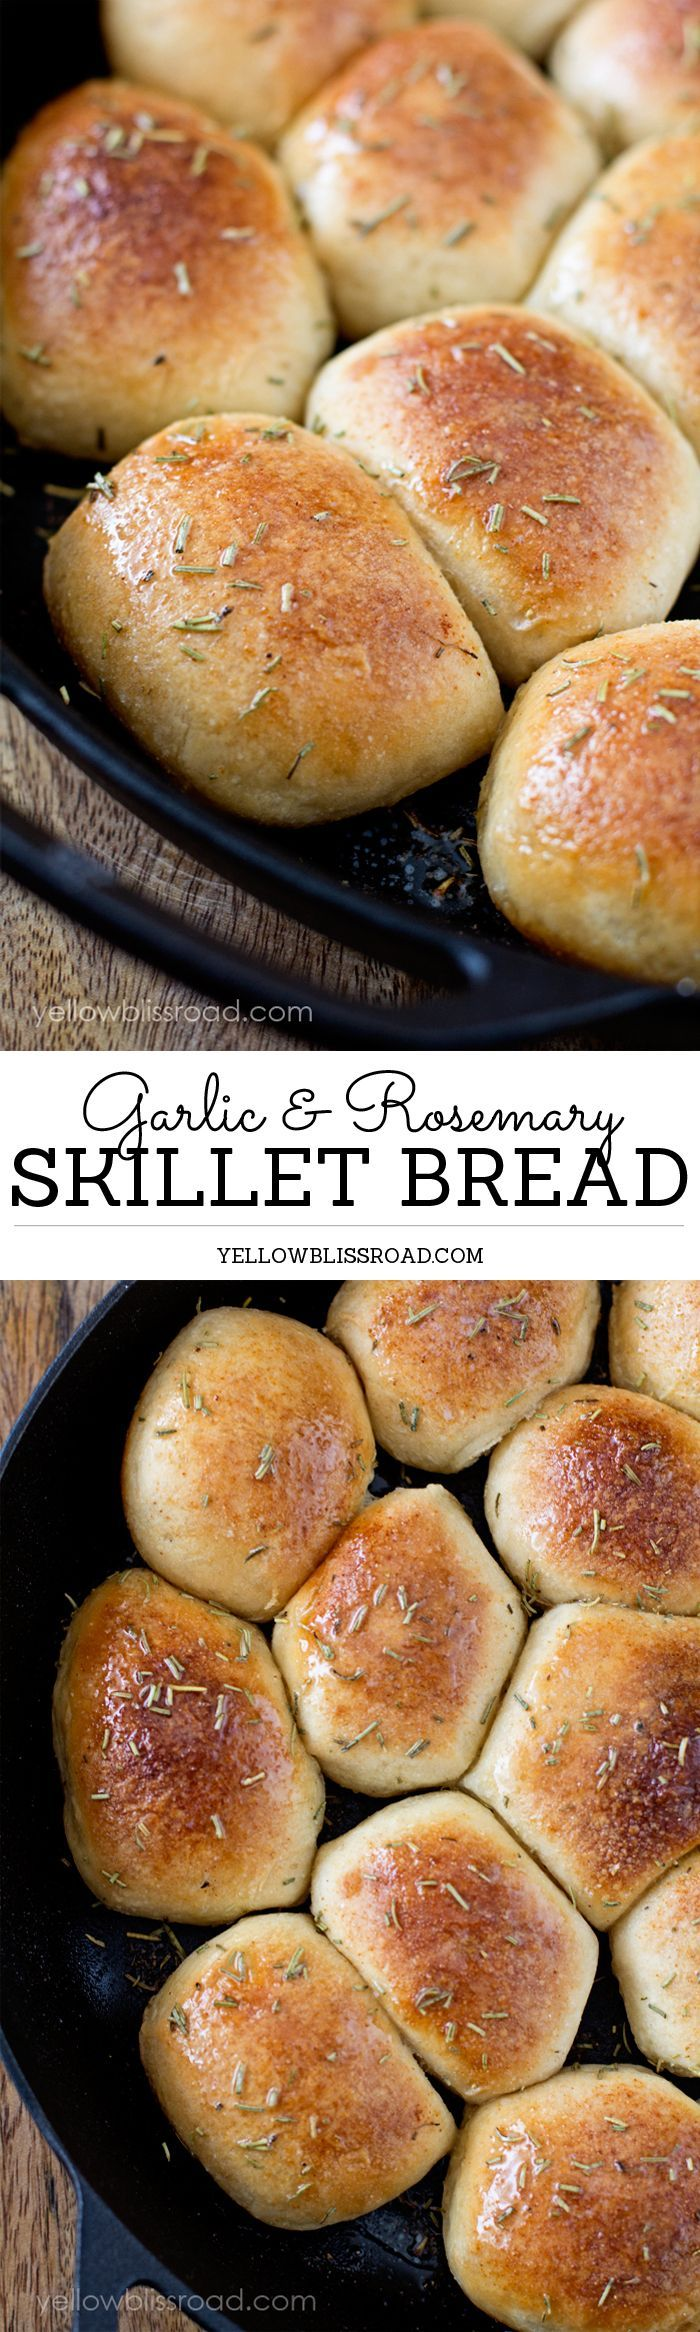 I am not one for pre-made processed foods-in a pinch this will do.    Garlic & Rosemary Skillet Bread - So easy to make, no one will know they started as basic frozen dinner rolls!